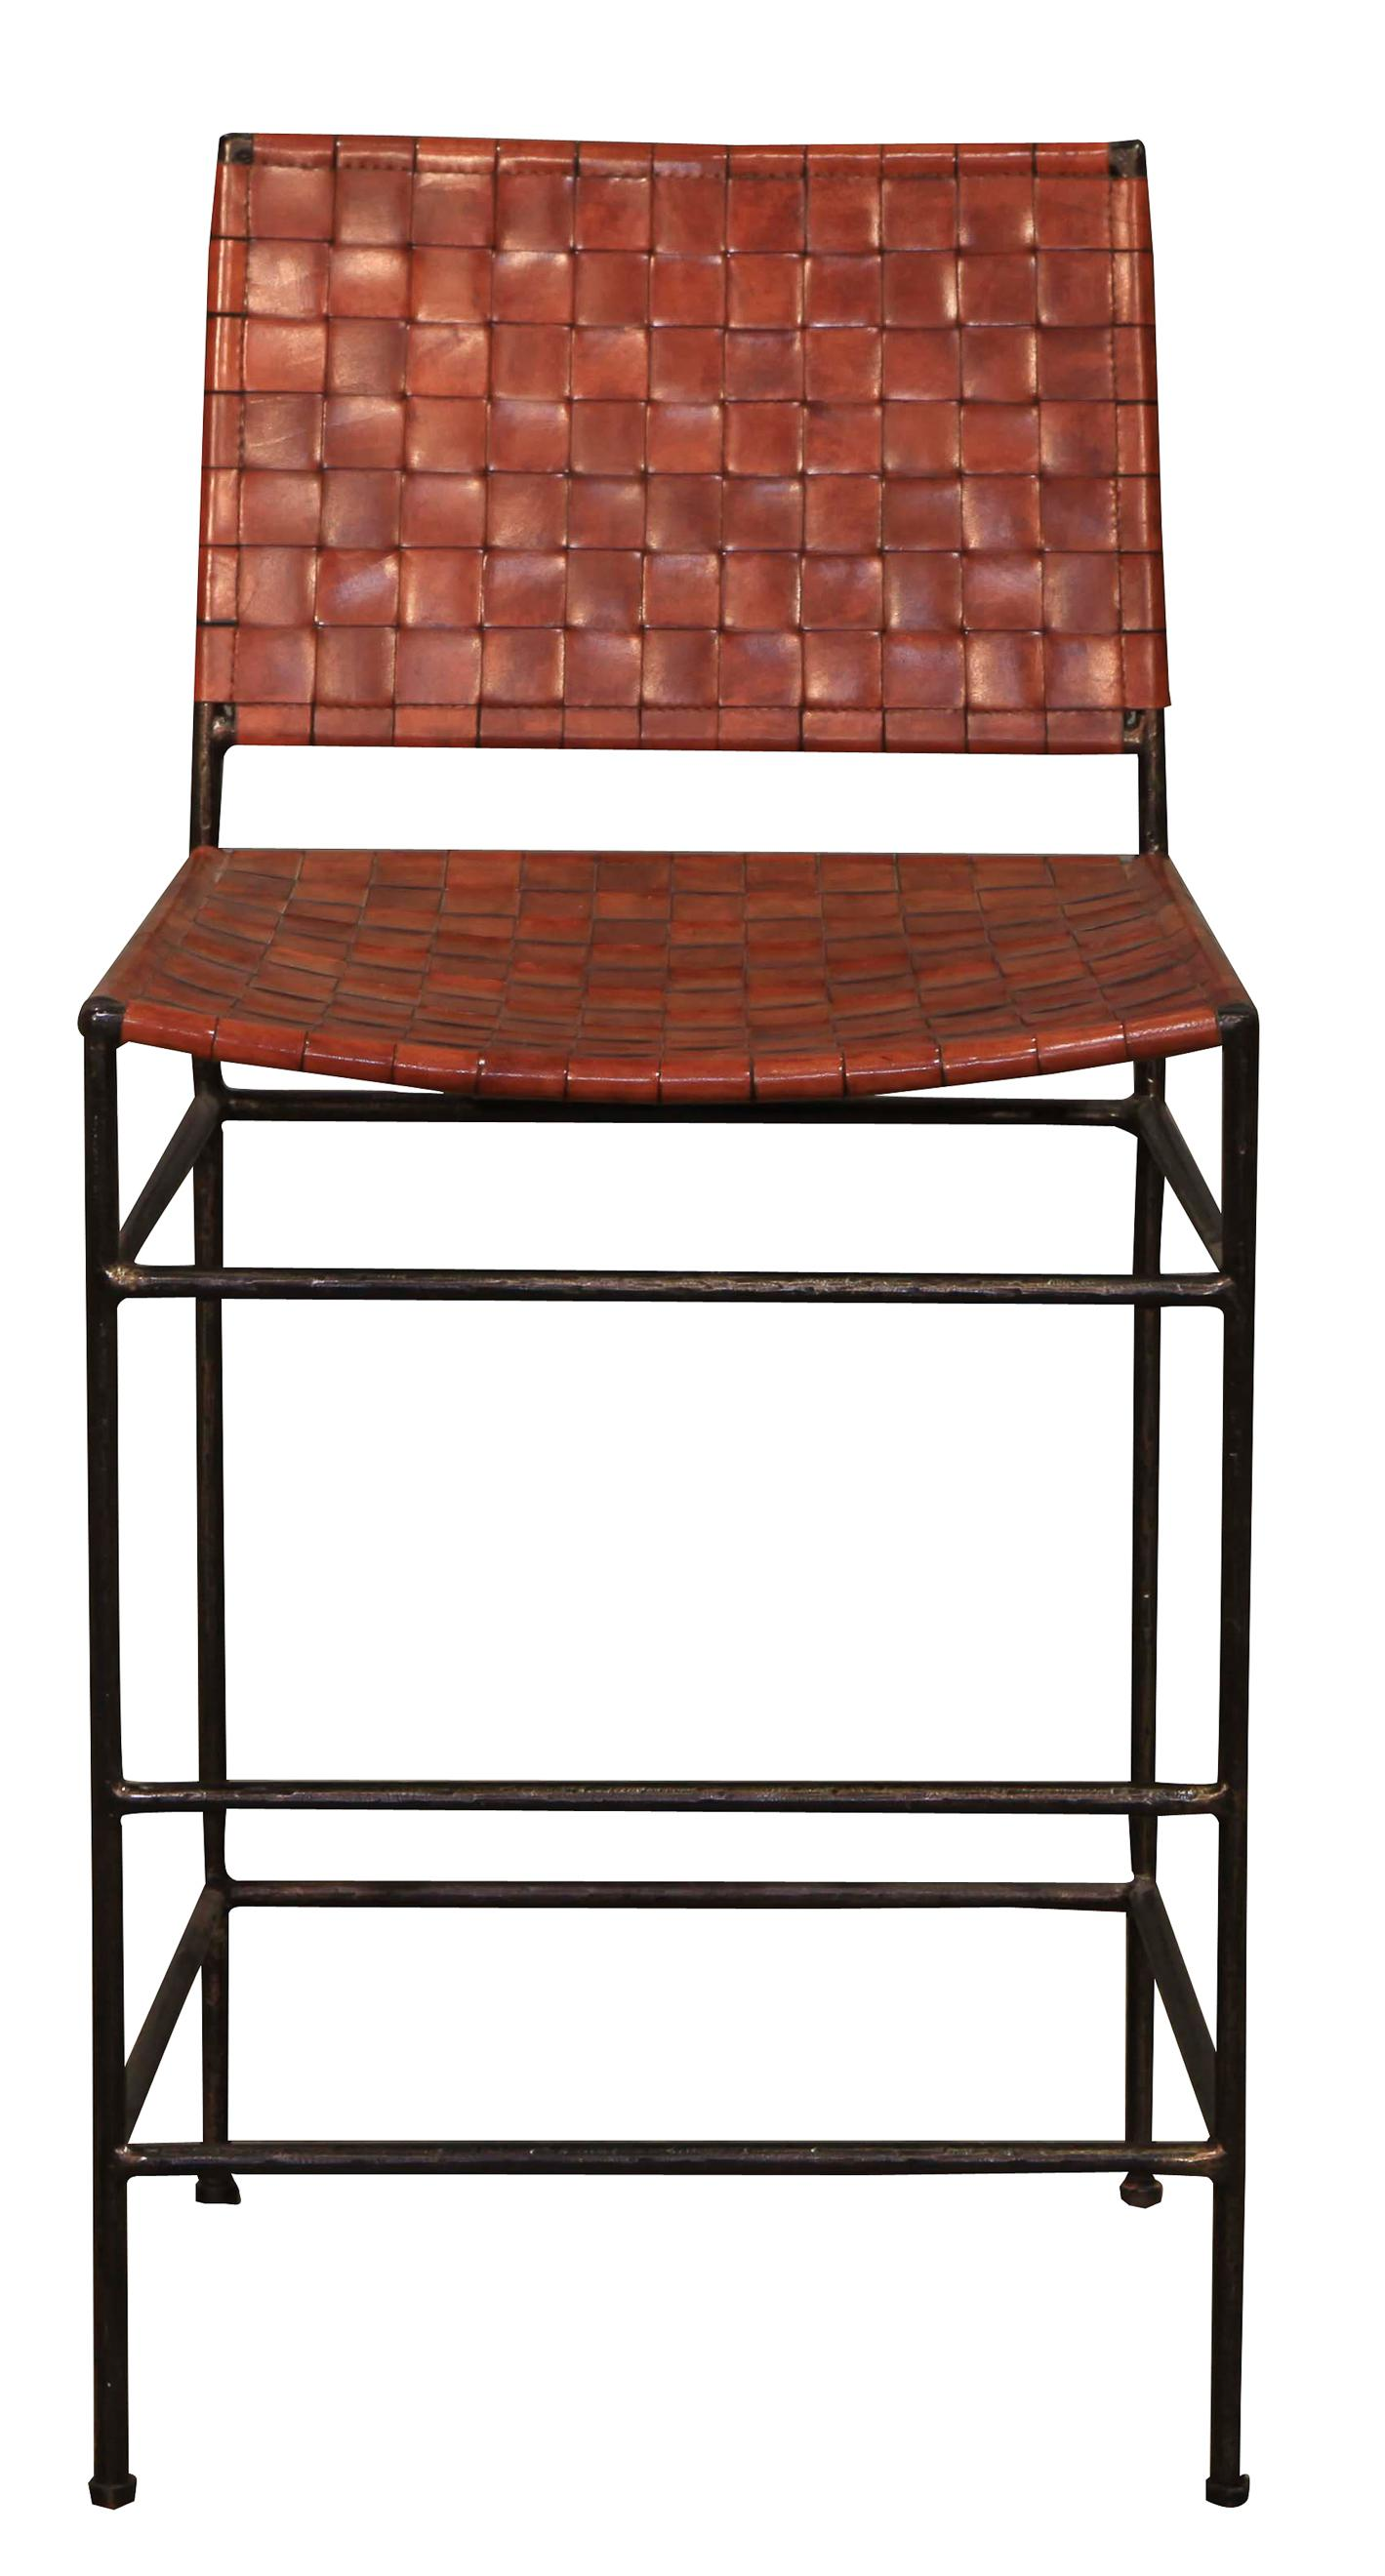 Vintage Sarreid Ltd Woven Leather Iron Bar Stool Chairish